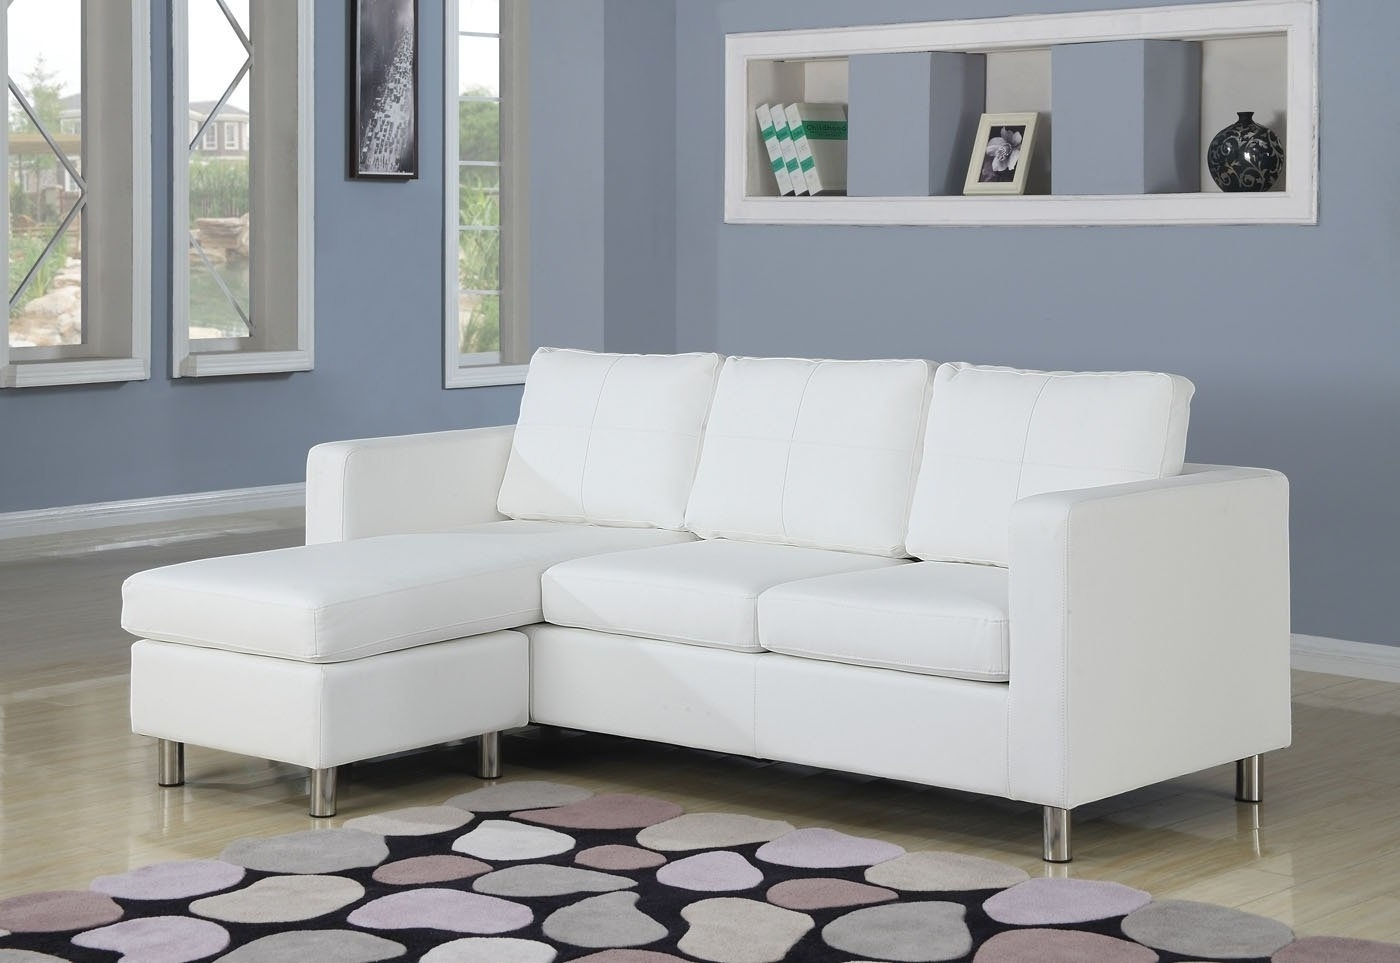 Apartment Sectional Sofas With Chaise With Preferred Sofa : Chaise Sofa Double Chaise Sectional Leather Apartment Size (View 6 of 20)